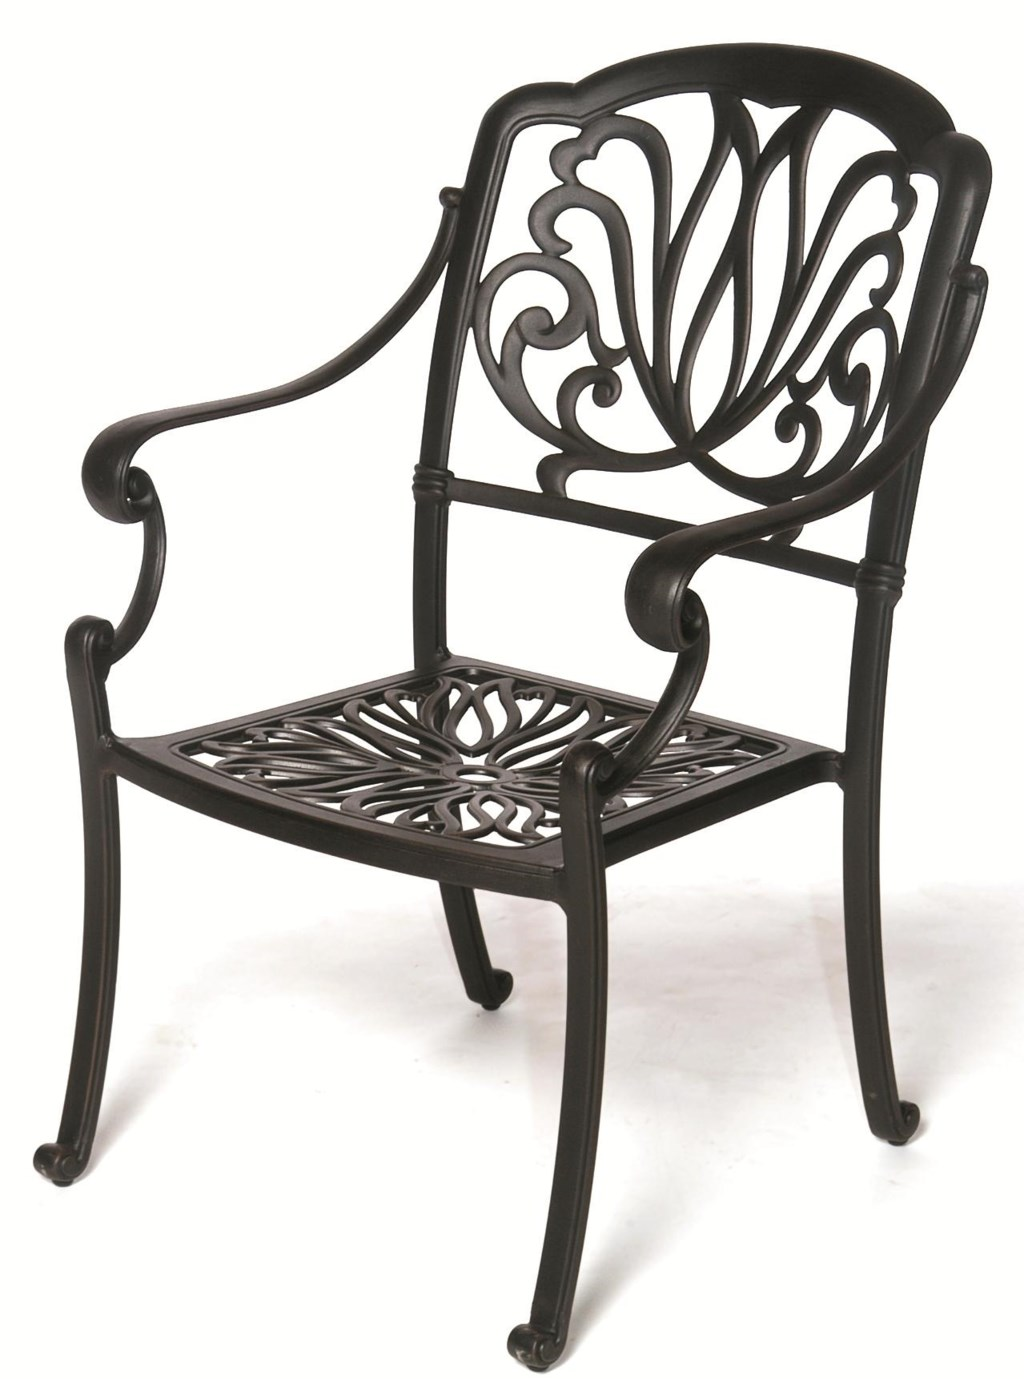 Hanamint Biscayne Outdoor Aluminum Arm Chair with Ornate Casting